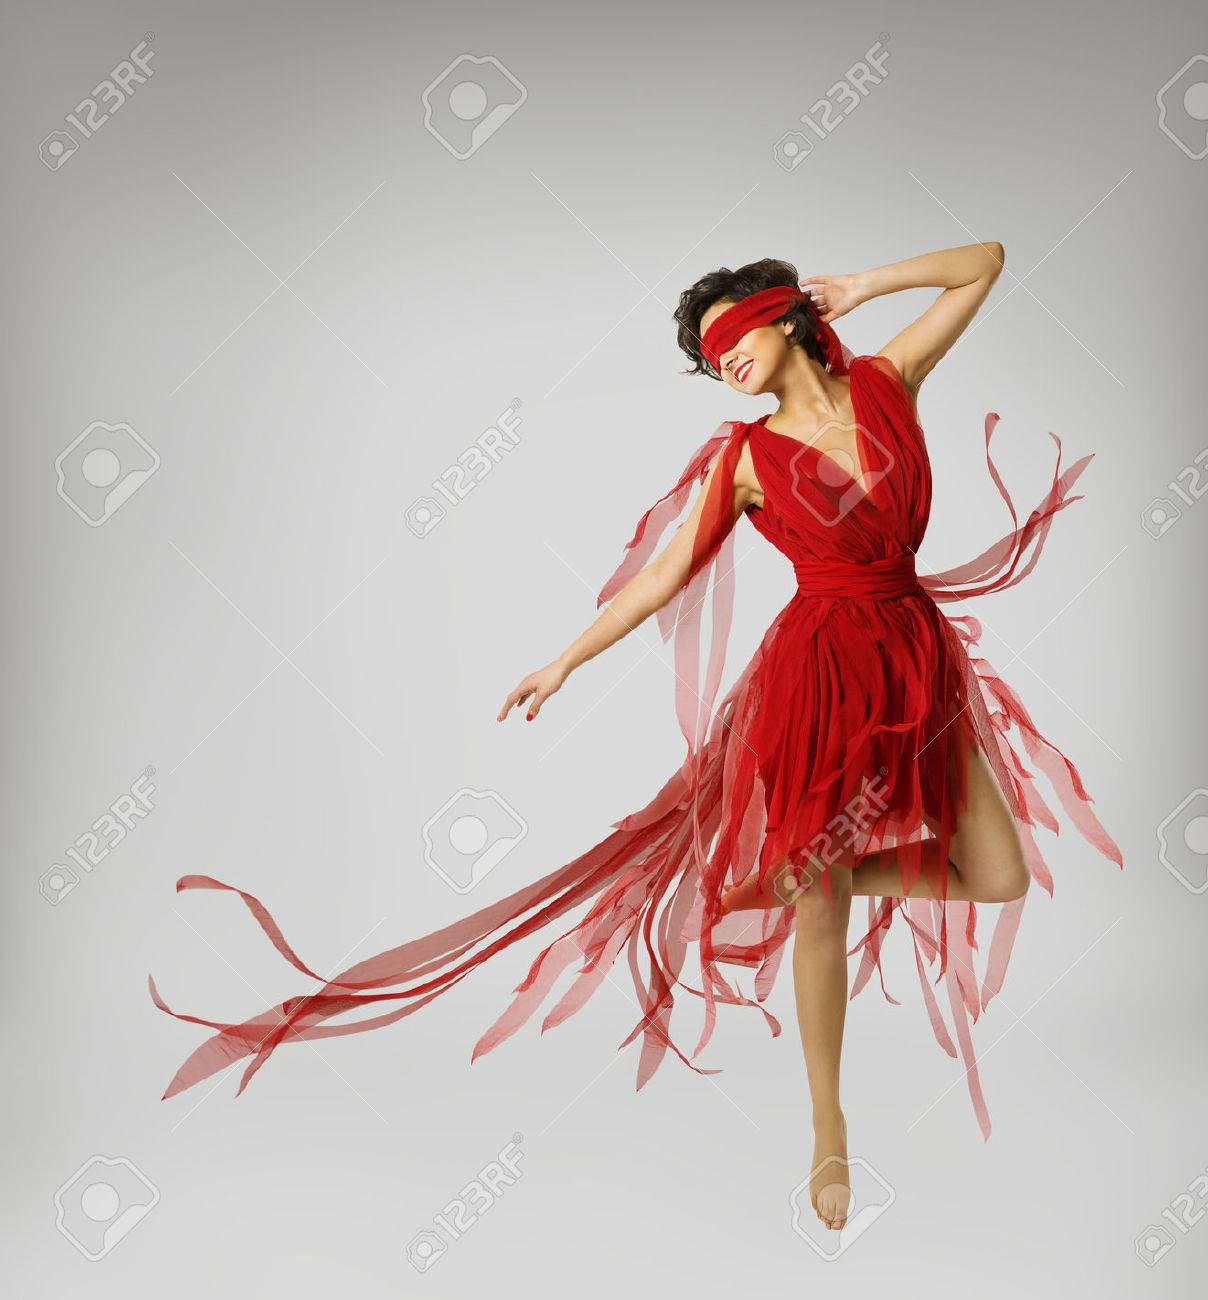 f2b4780bb840 Stock Photo - Woman Artist Dancing in Red Dress, Girl with Band on Eyes,  Model with Ribbon Bandage over light gray background